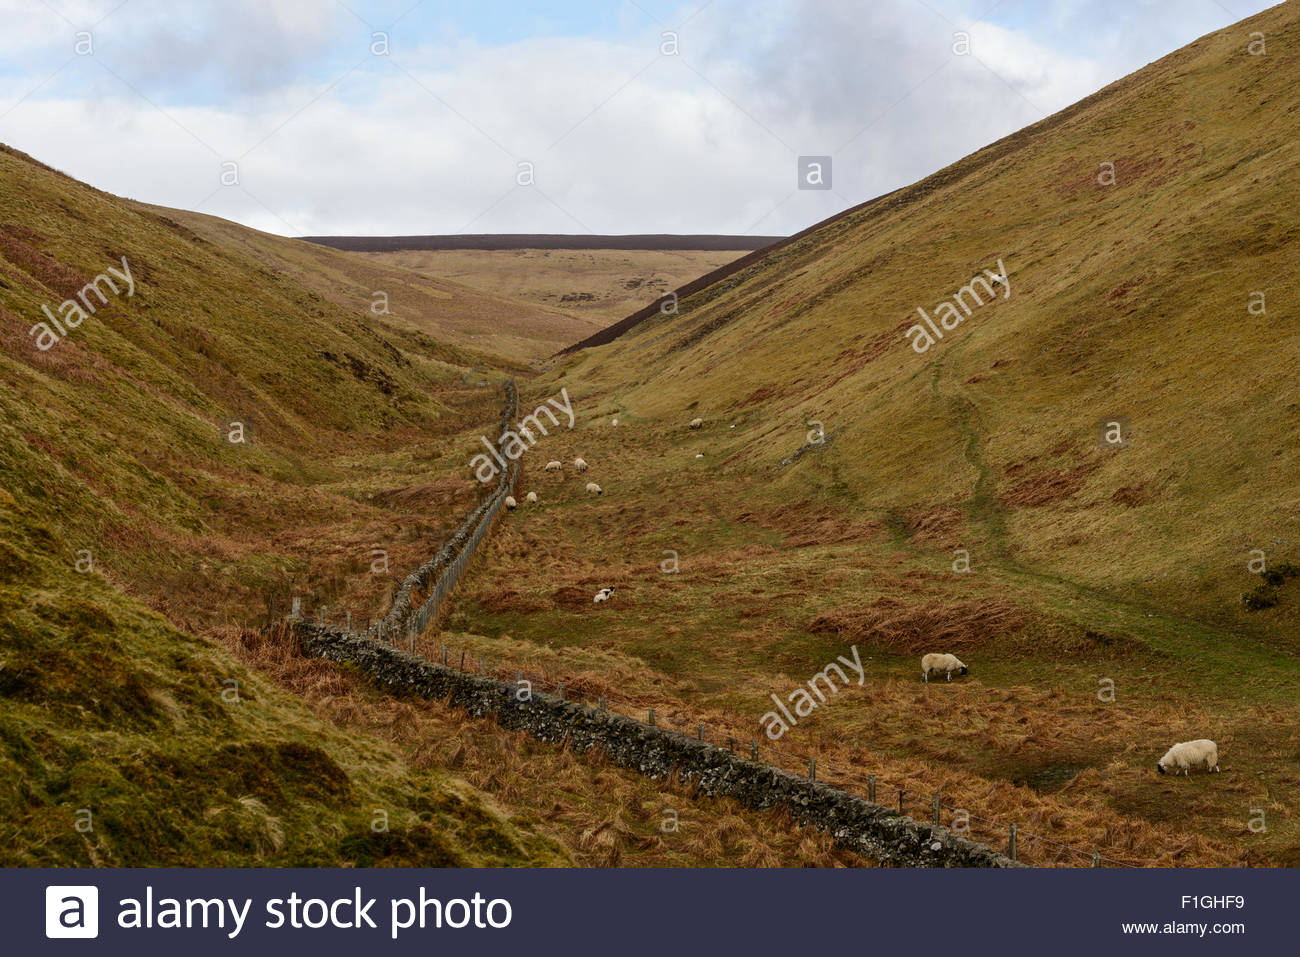 Hilly countryside near the village of Coulter in South Lanarkshire, Scotland in early-Spring. - Stock Image